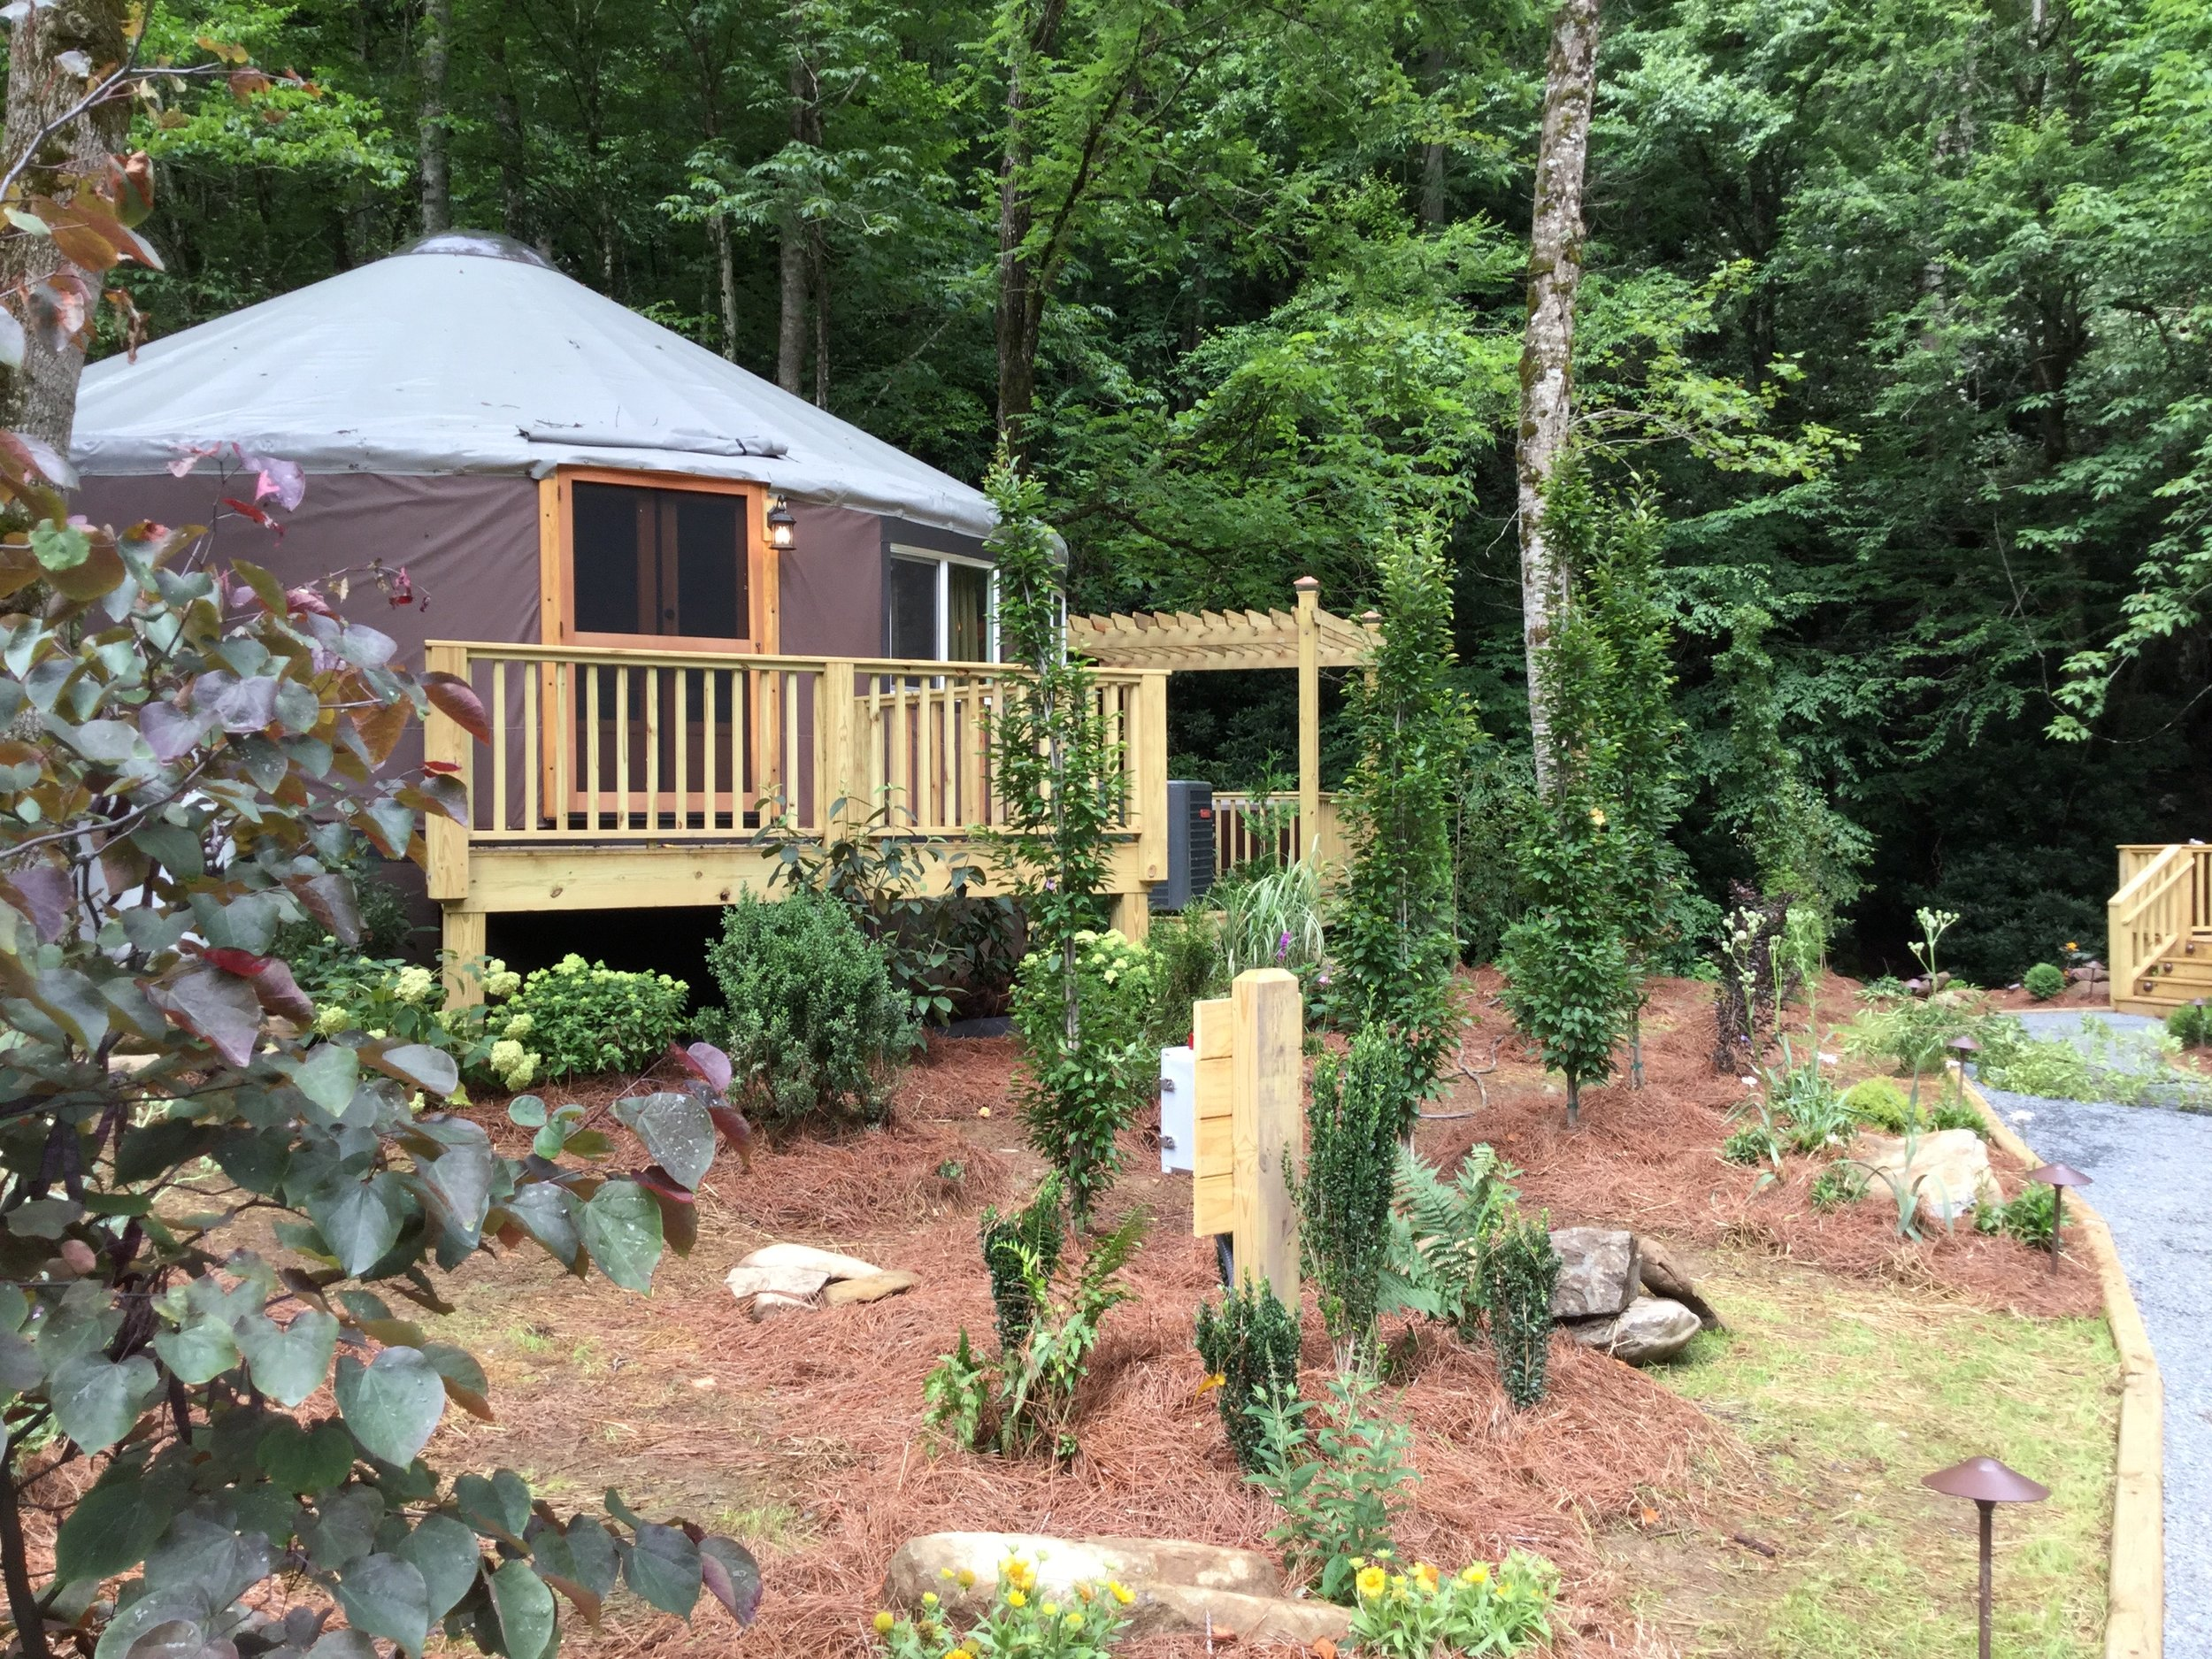 Luxury Yurt For Rent Lake Nantahala Cabin Rental Yurt floor plans are hand drawn by our yurt specialist, dana. luxury yurt for rent lake nantahala